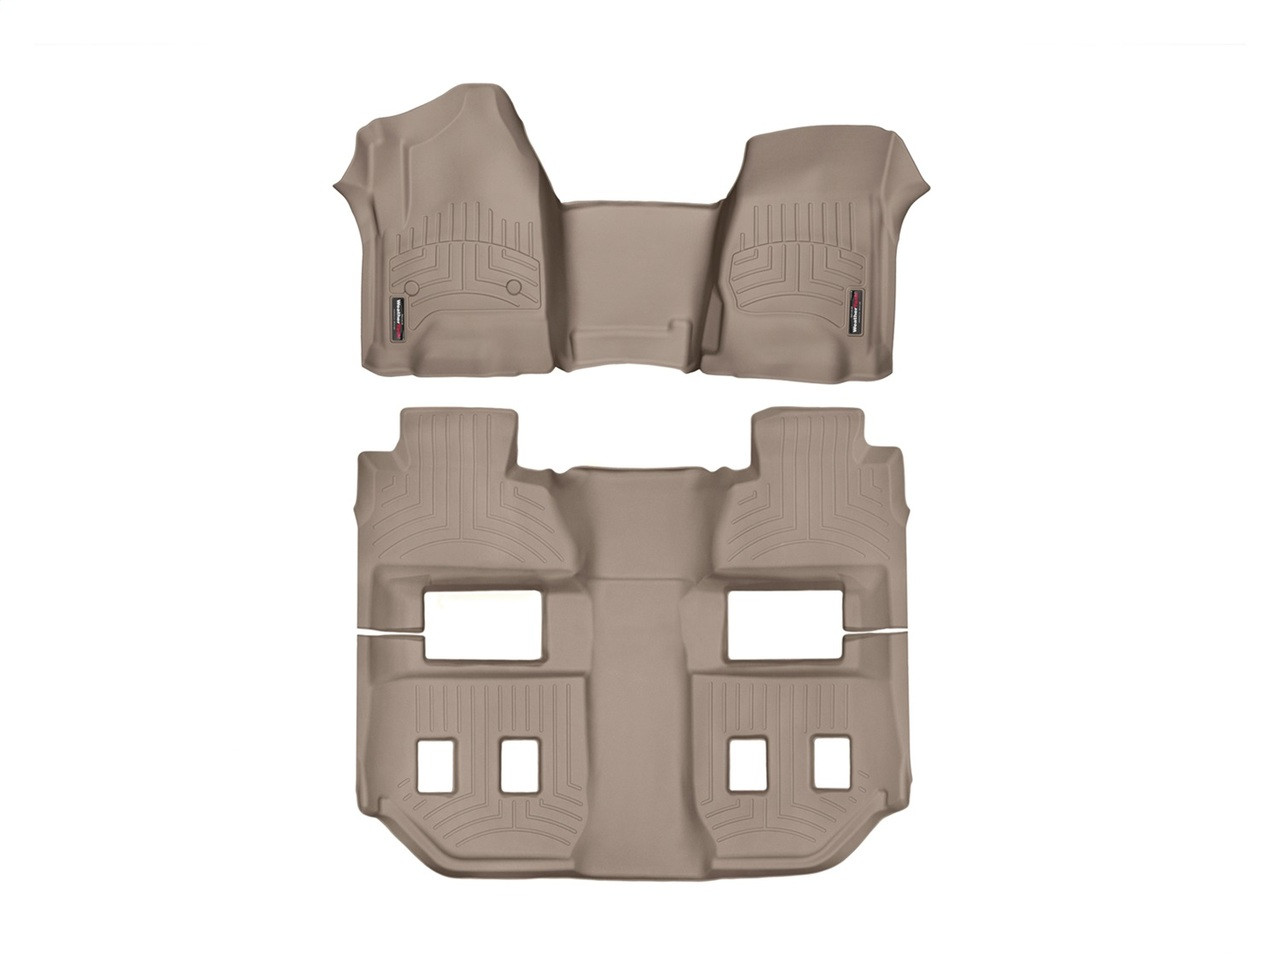 Weathertech 174 455431 456073 Floorliner Digitalfit Tan 1st